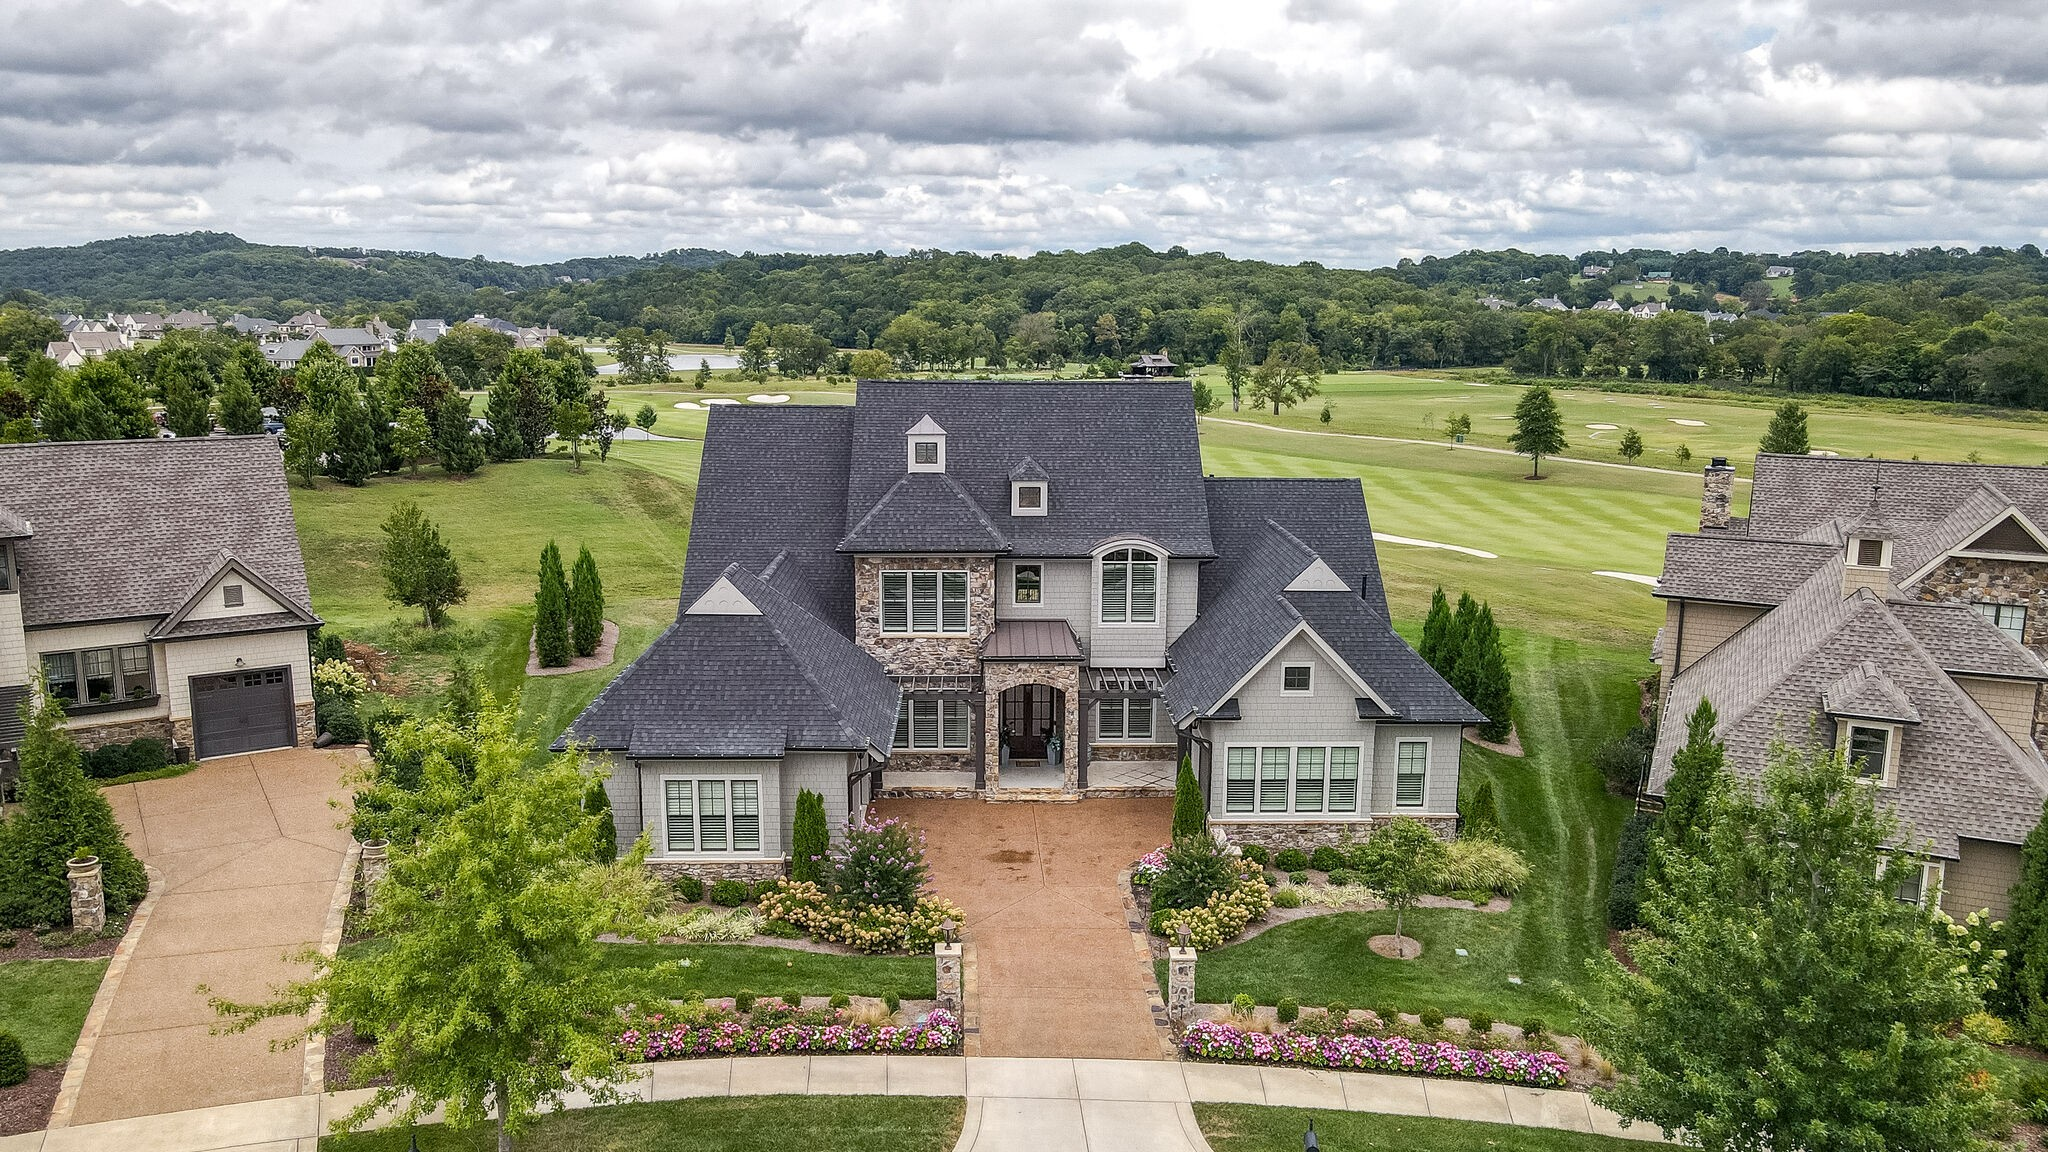 One of a kind location/ golf course home at The Grove! Beautiful Legend Custom Home on 18th fairway w/ fairway, practice area & open space views. Luxurious Owner Suite w/sauna overlooking golf course & distant ridgeline! Soaring Great Room w/ vaulted ceilings, main level game room/lounge, premium appliances, custom built-ins, & even an elevator! Make this home a must see!  Walking distance to tennis courts, pools, clubhouse, general store etc. Golf course homes at The Grove are a veryrare find!